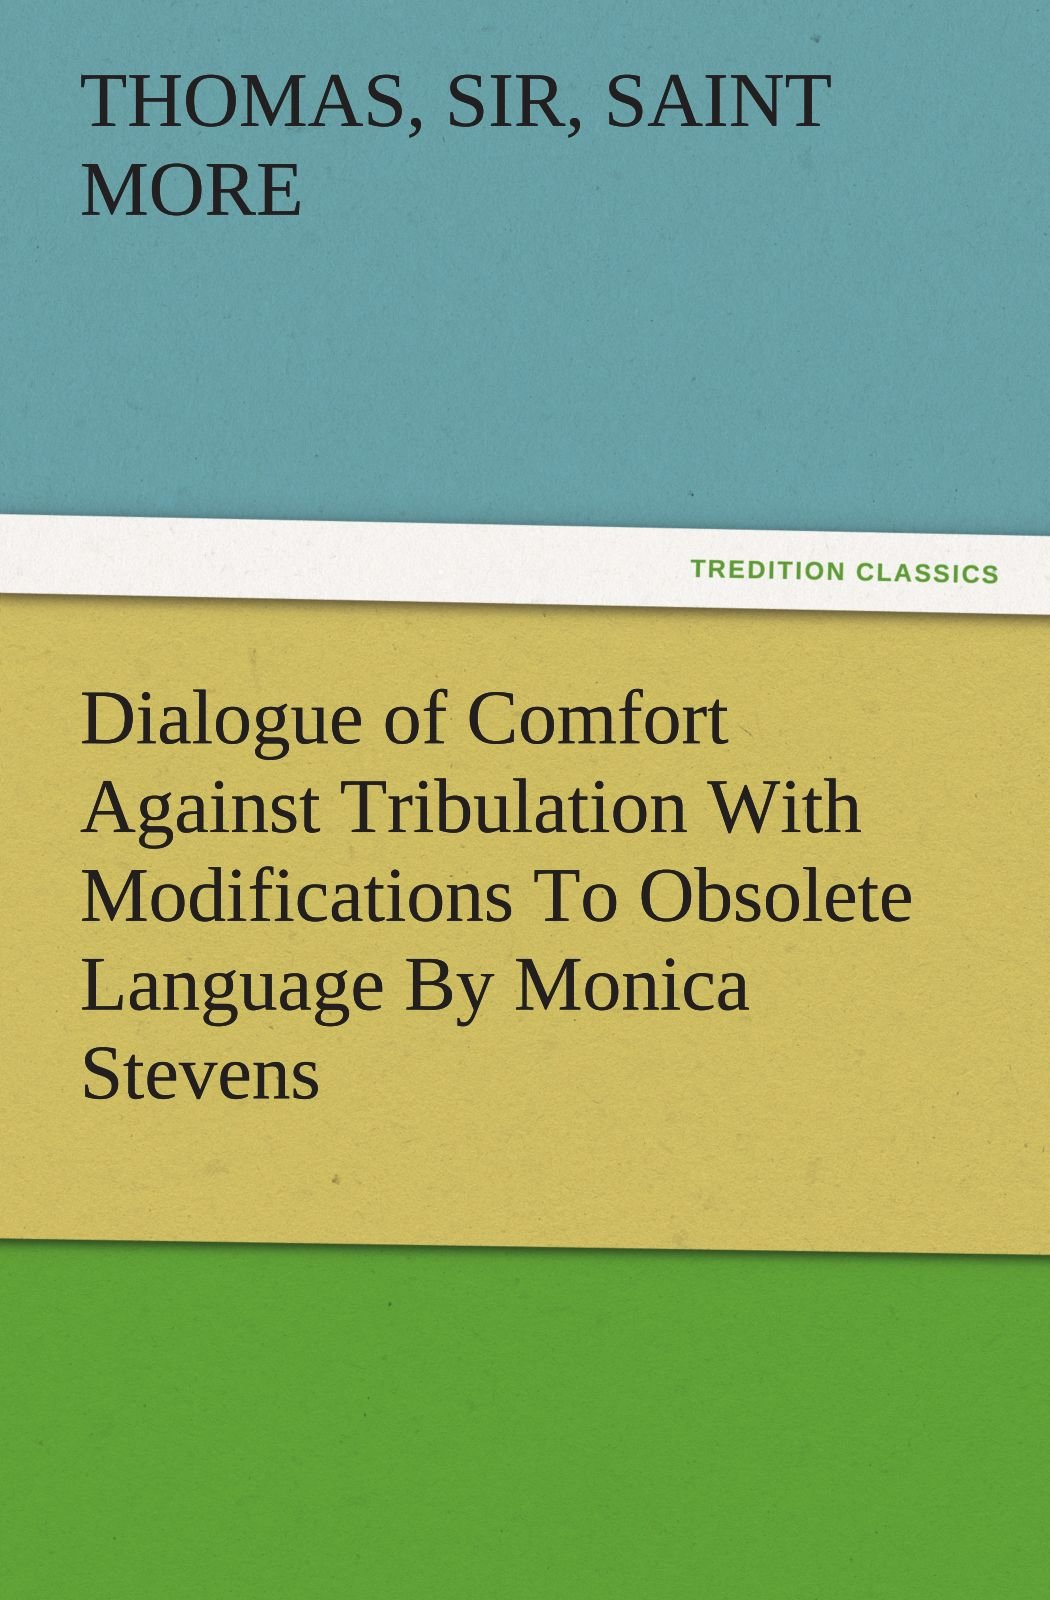 Dialogue of Comfort Against Tribulation With Modifications To Obsolete Language By Monica Stevens (TREDITION CLASSICS) by Thomas More